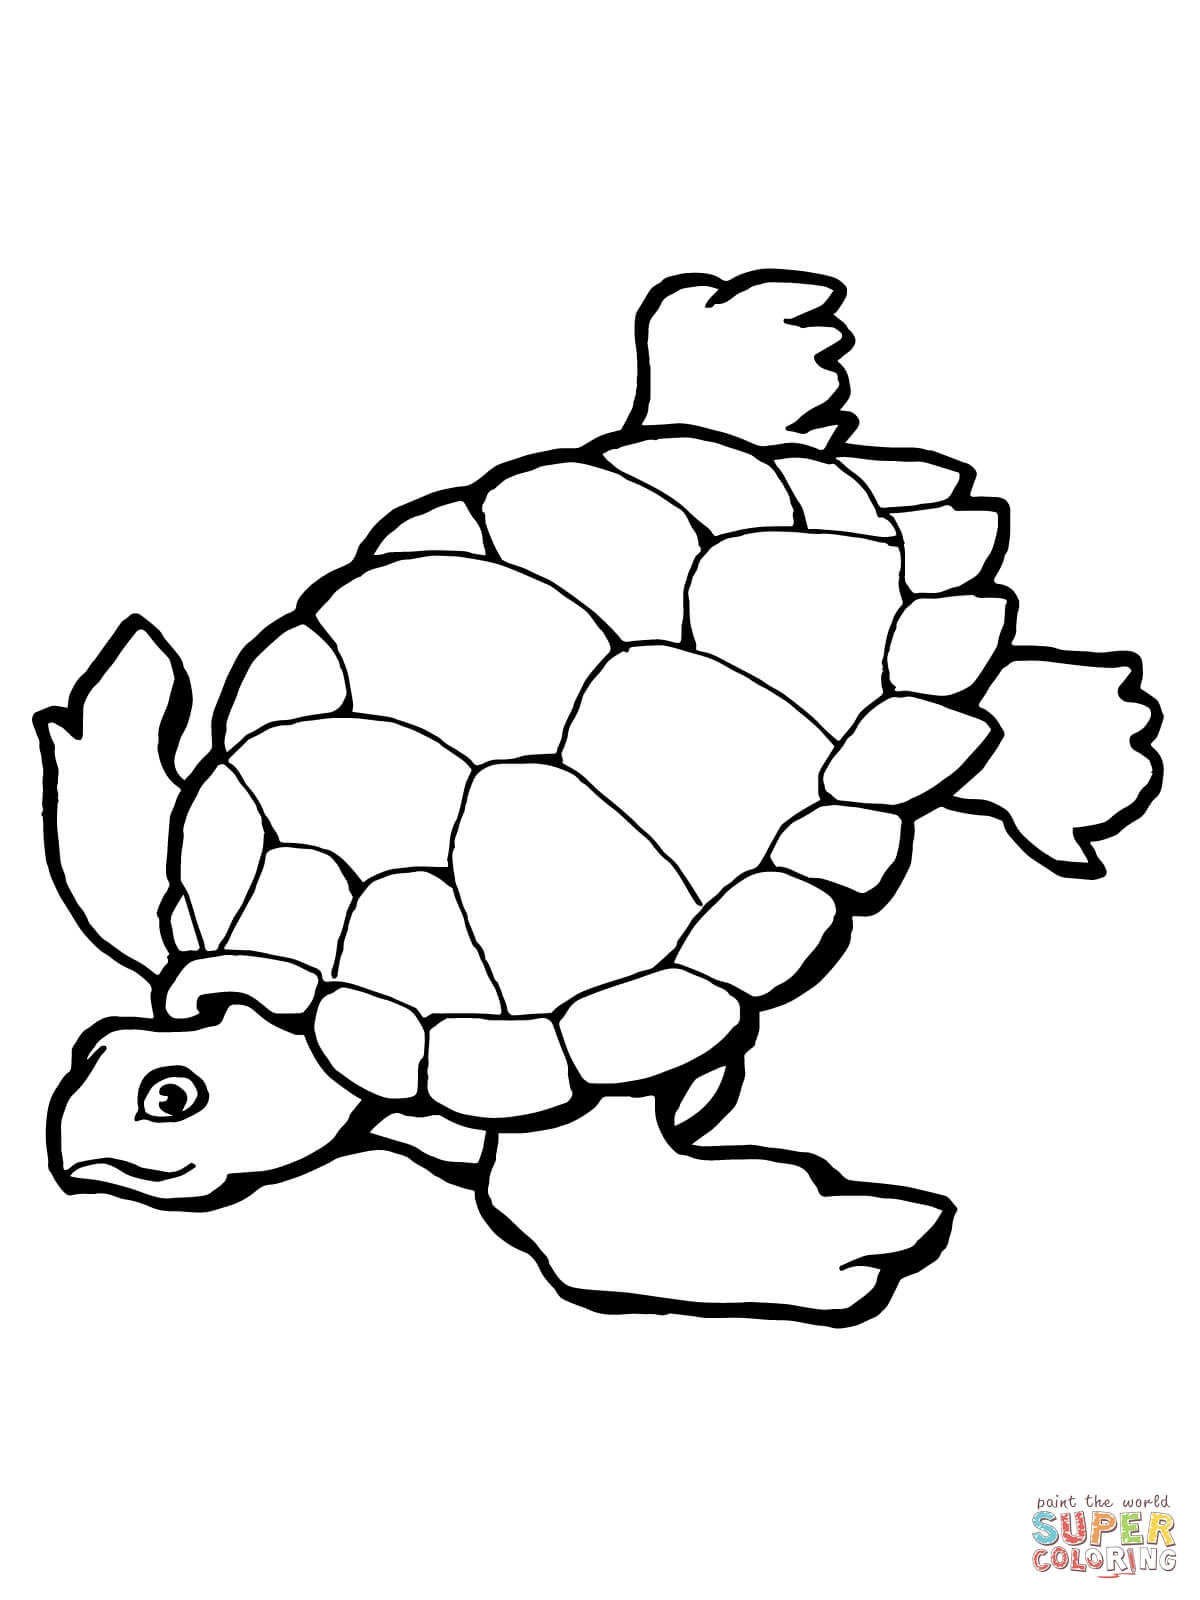 march coloring pages - coloring page of turtle swimming sea turtle coloring page free printable coloring pages